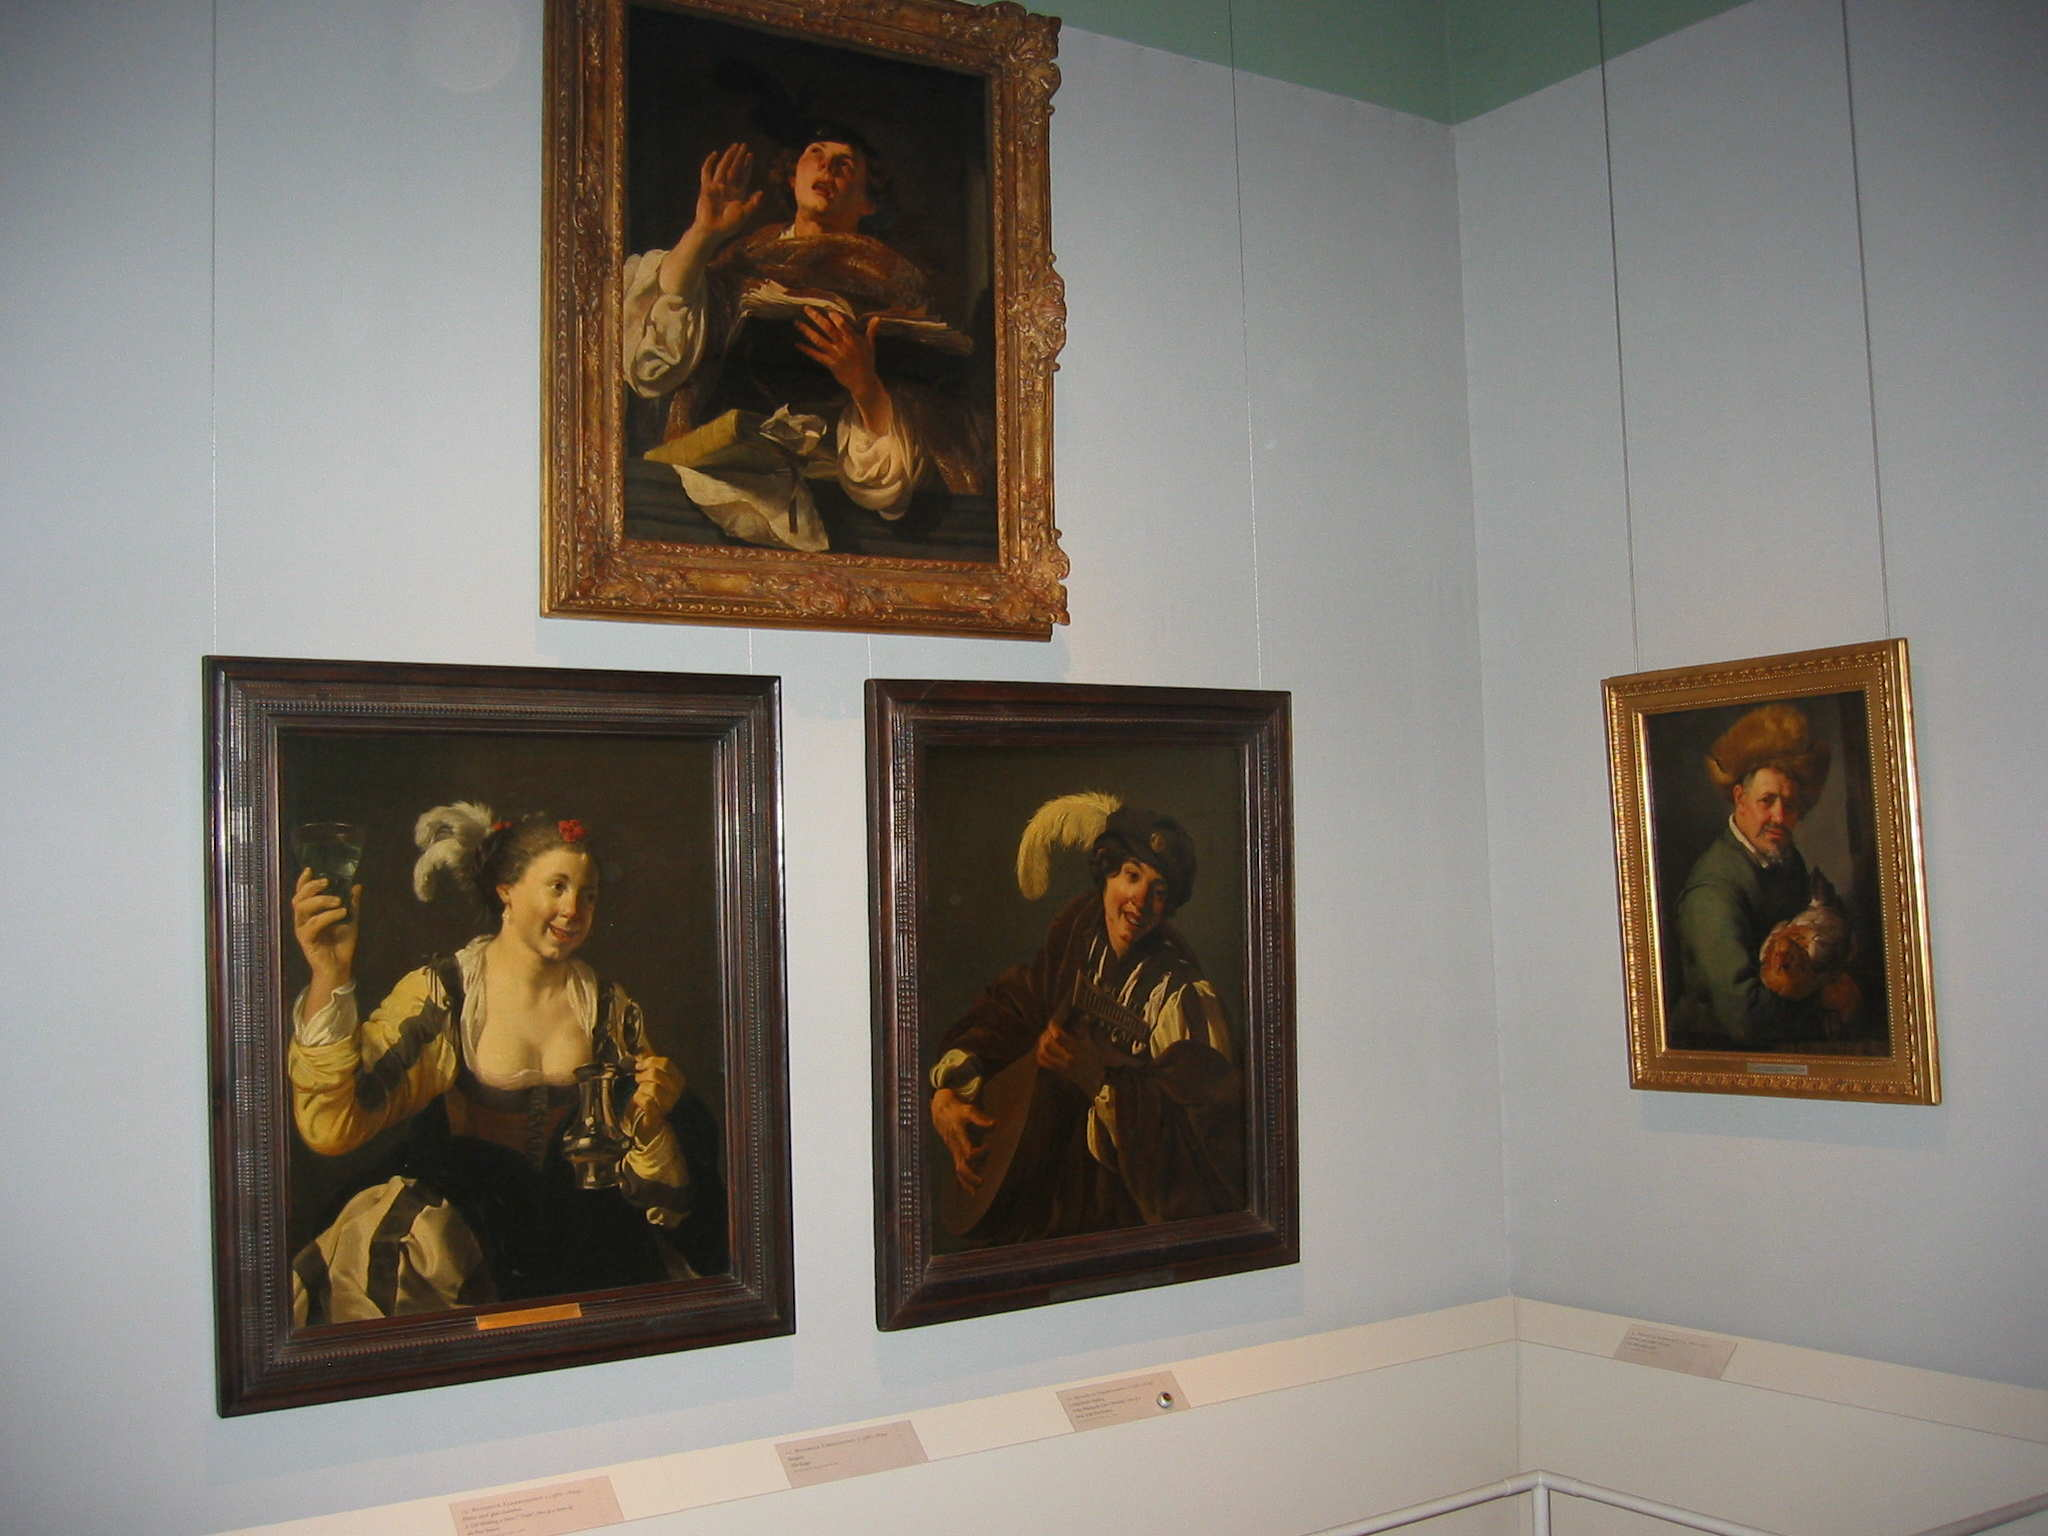 First gallery in Dutch painting exhibition in Nationalmuseum, Stockholm, 2005